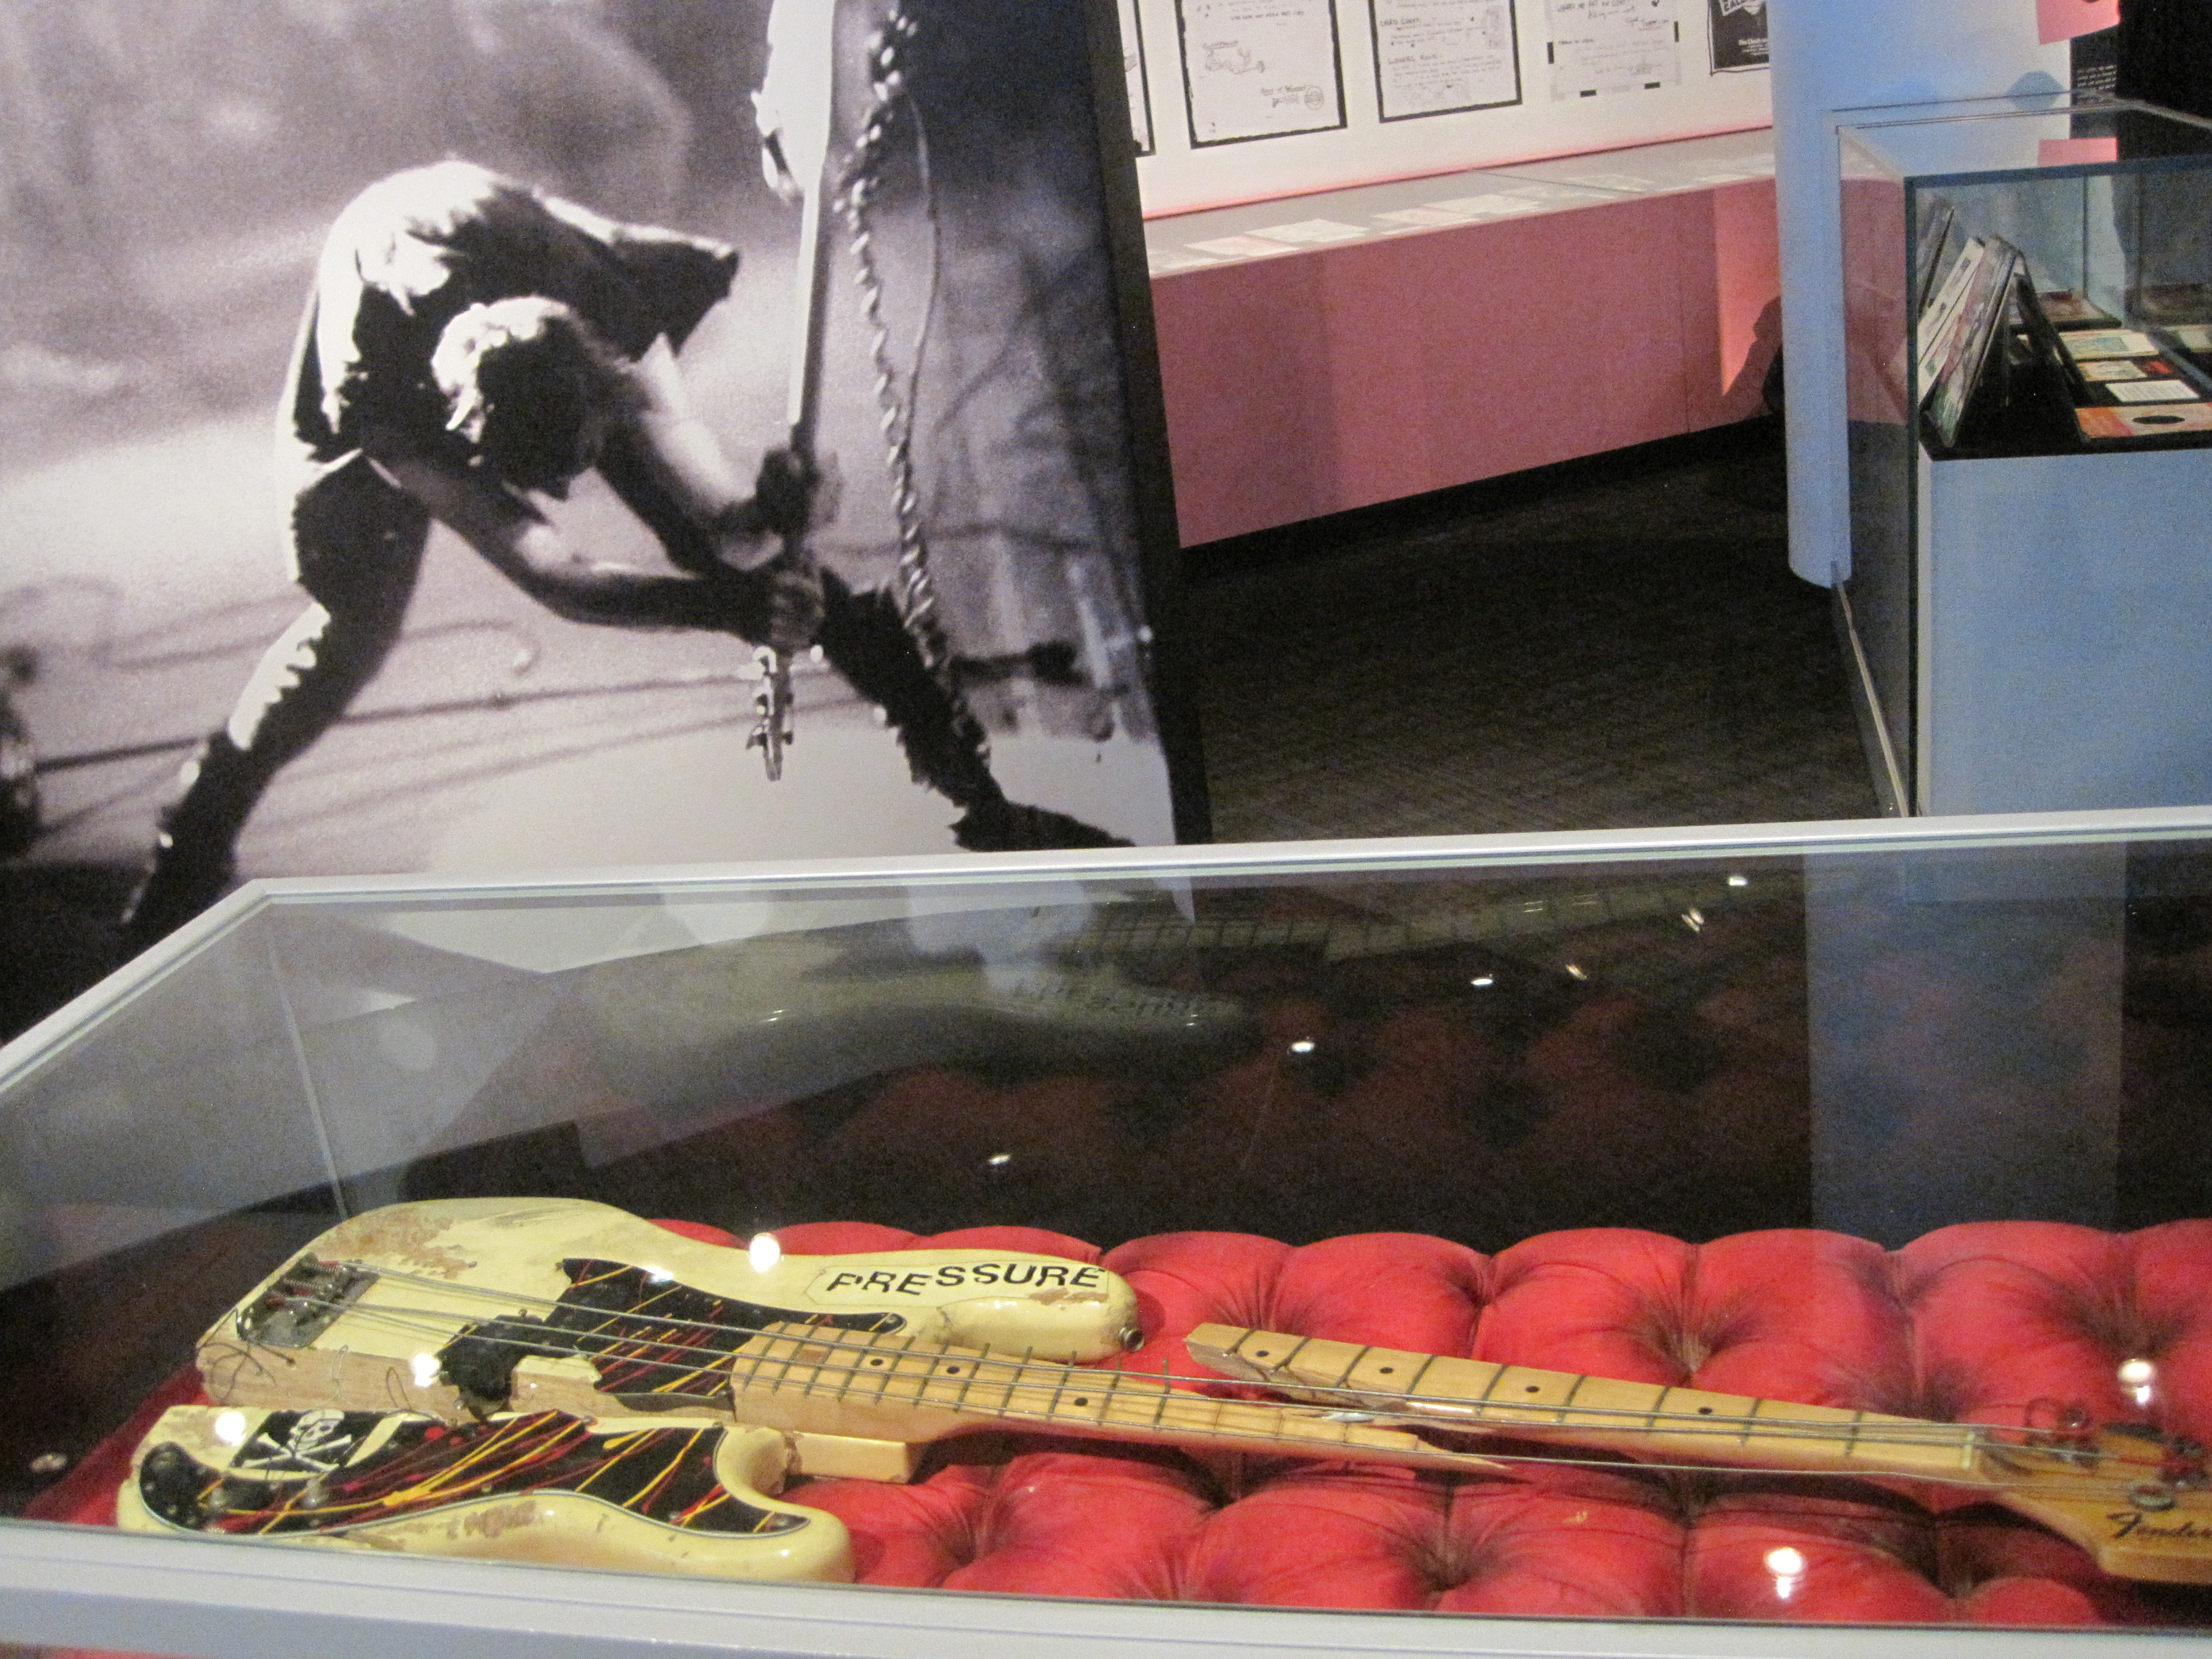 Paul Simonon's broken Fender Precision Bass, smashed on stage at The Palladium in New York City on 21st September 1979.